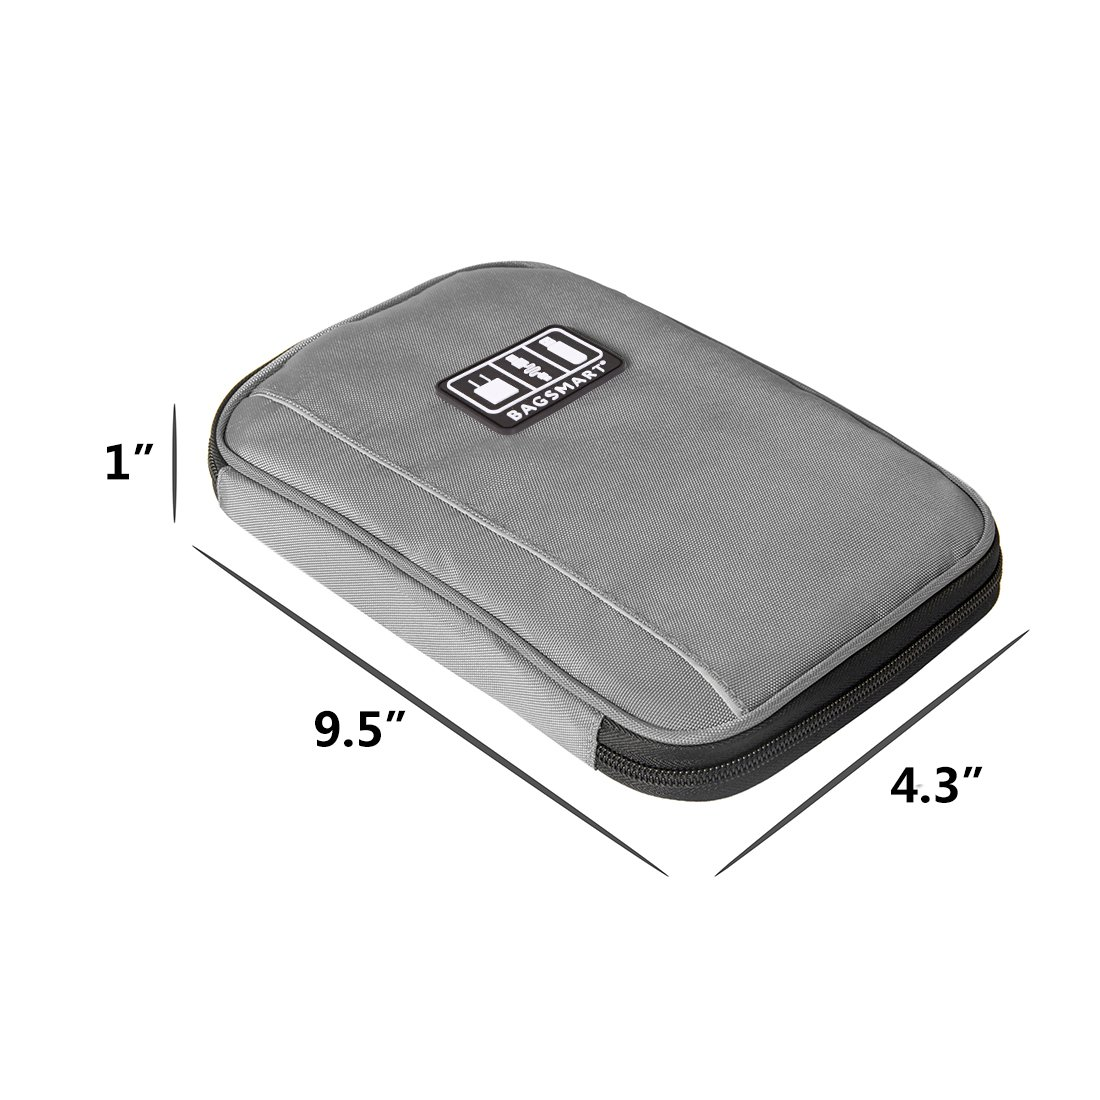 BAGSMART Travel Universal Cable Organizer Electronics Accessories Cases For Various USB, Phone, Charger and Cable, Grey by BAGSMART (Image #5)